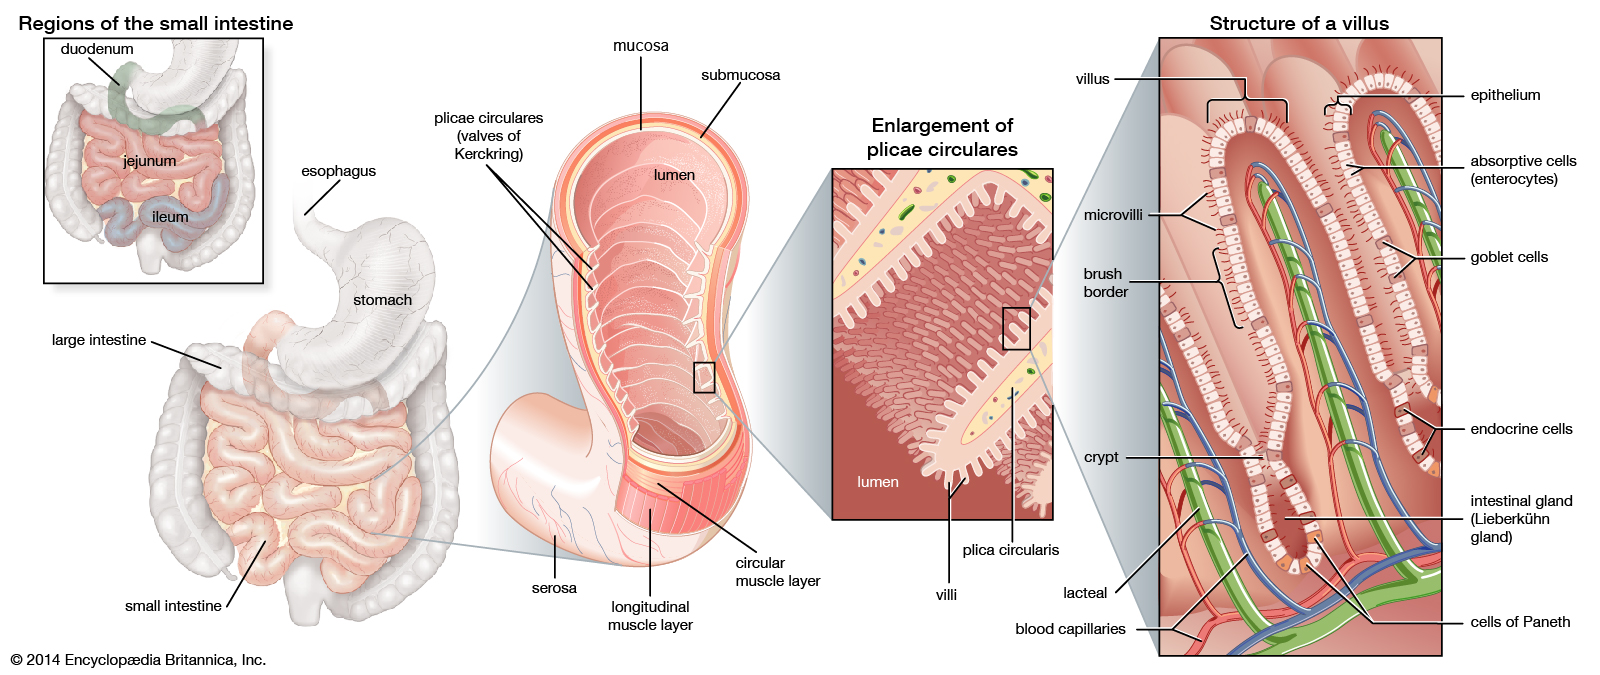 About Anatomy and Physiology Online Course – Full Guide